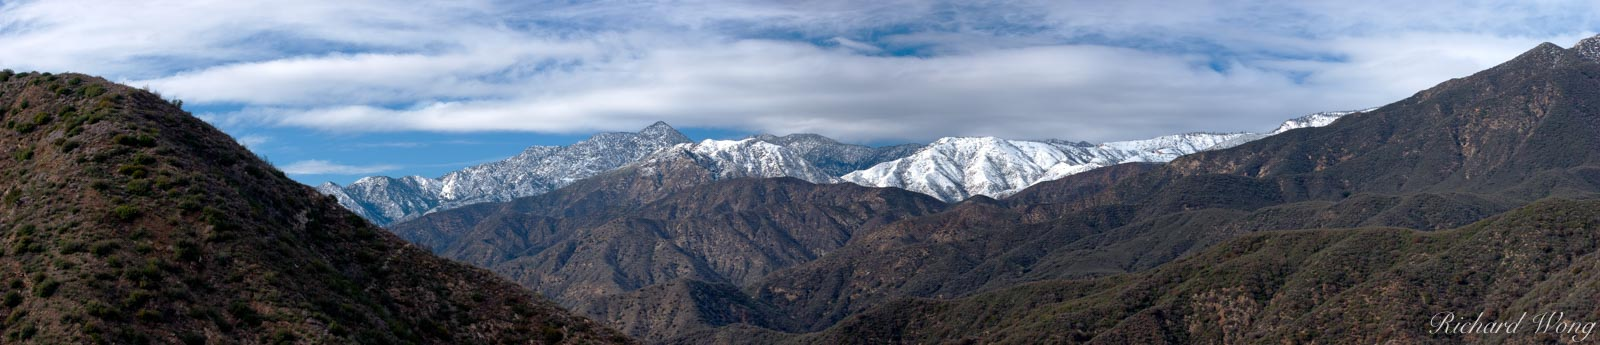 Snow-Capped San Gabriel Mountains, Angeles National Forest, California, photo, photo